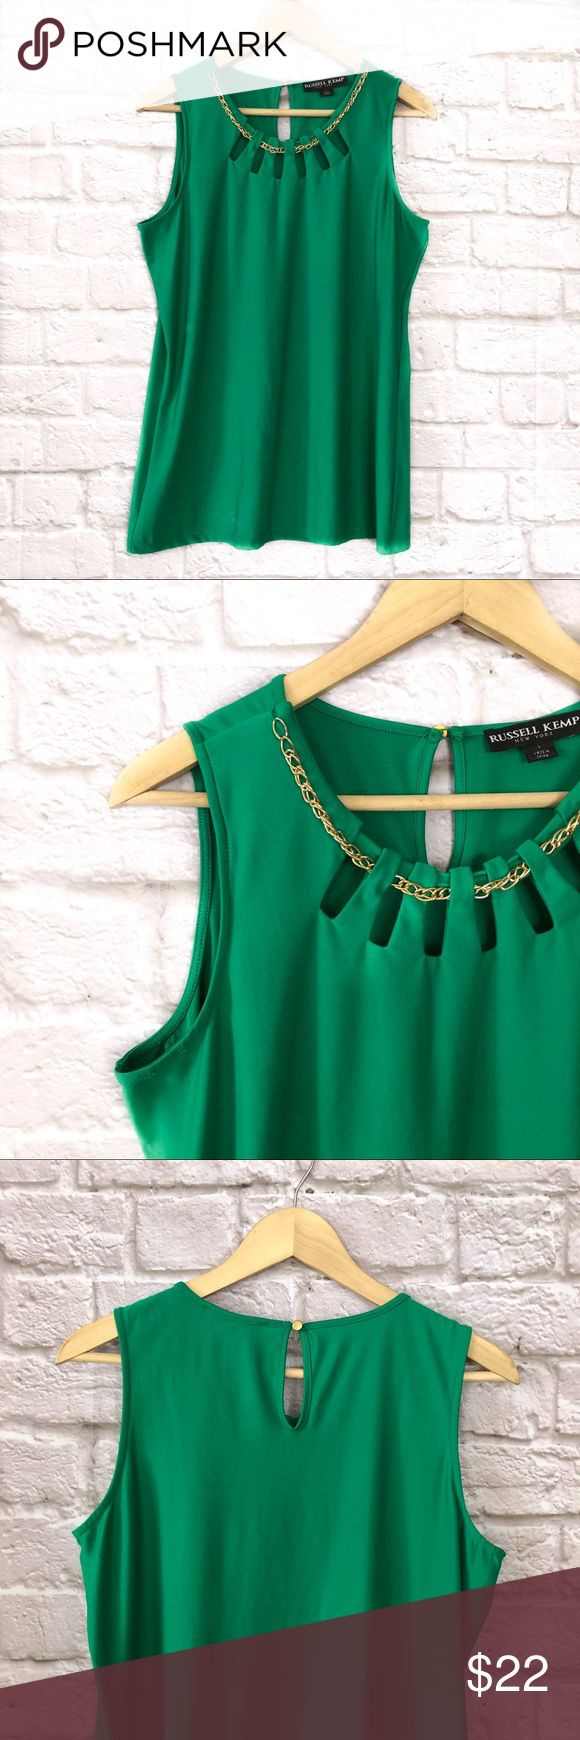 Russel Kemp emerald keyhole blouse w/ chain detail Beautiful bright emerald green sleeveless blouse withjeyhole cutouts on the neckline, threaded with a light gold chain, and accentuated with a simple keyhole in the back. Russell Kemp Tops Blouses